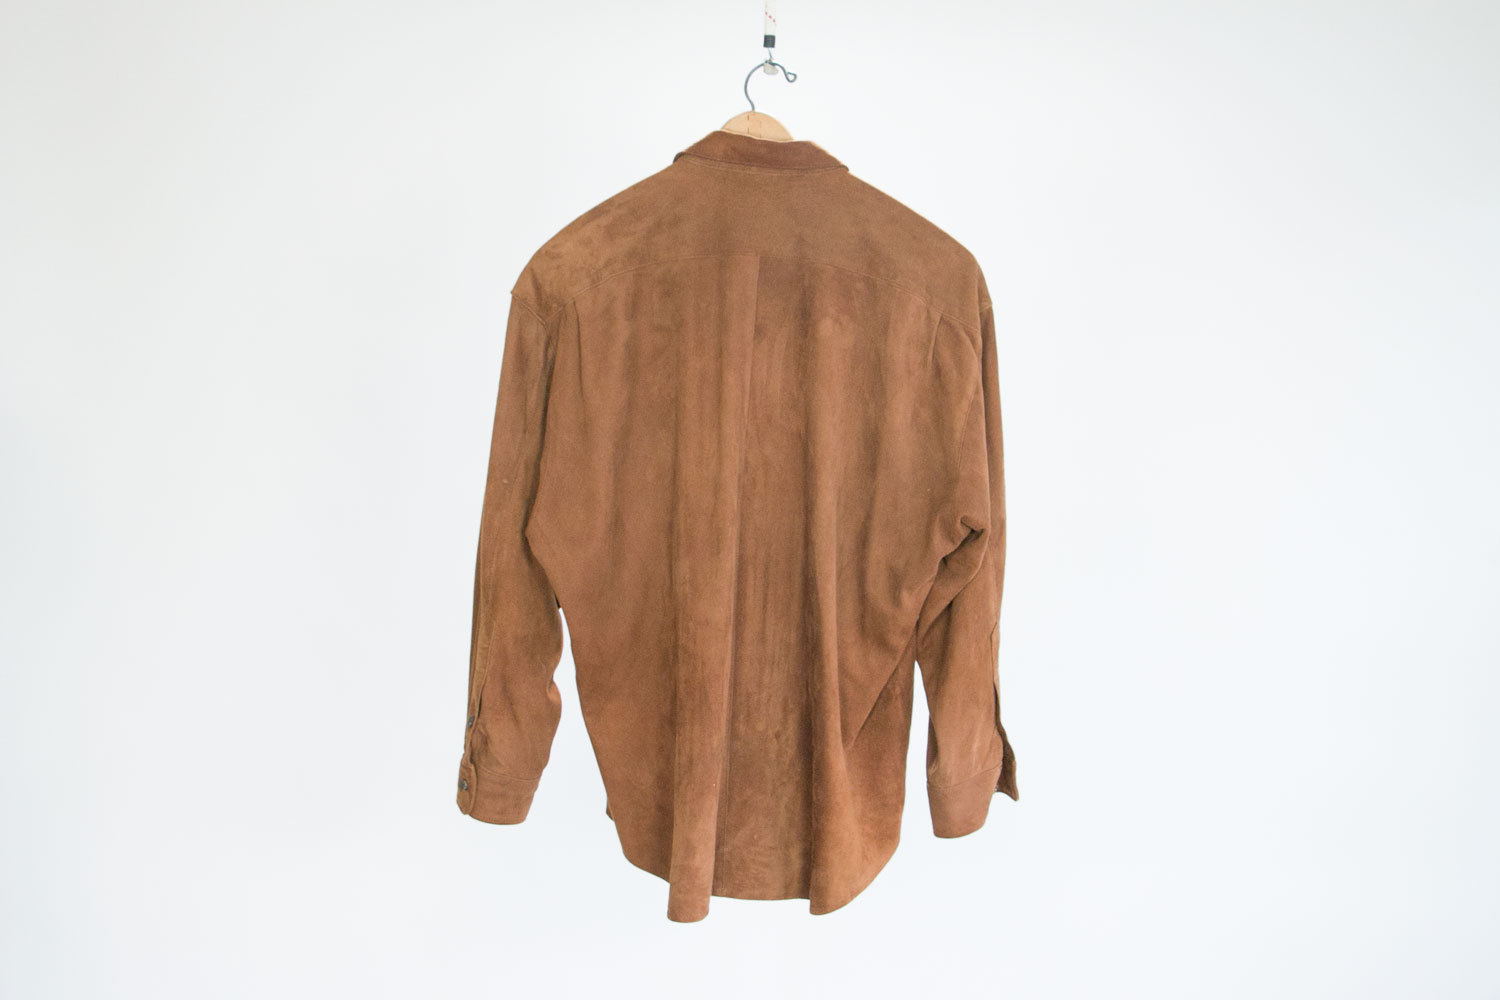 Vintage Brown Suede Leather Shirt, Button Down, Hammacher Schlemmer //  Size Men's Large // Rustic // Hipster // Rocker // Retro